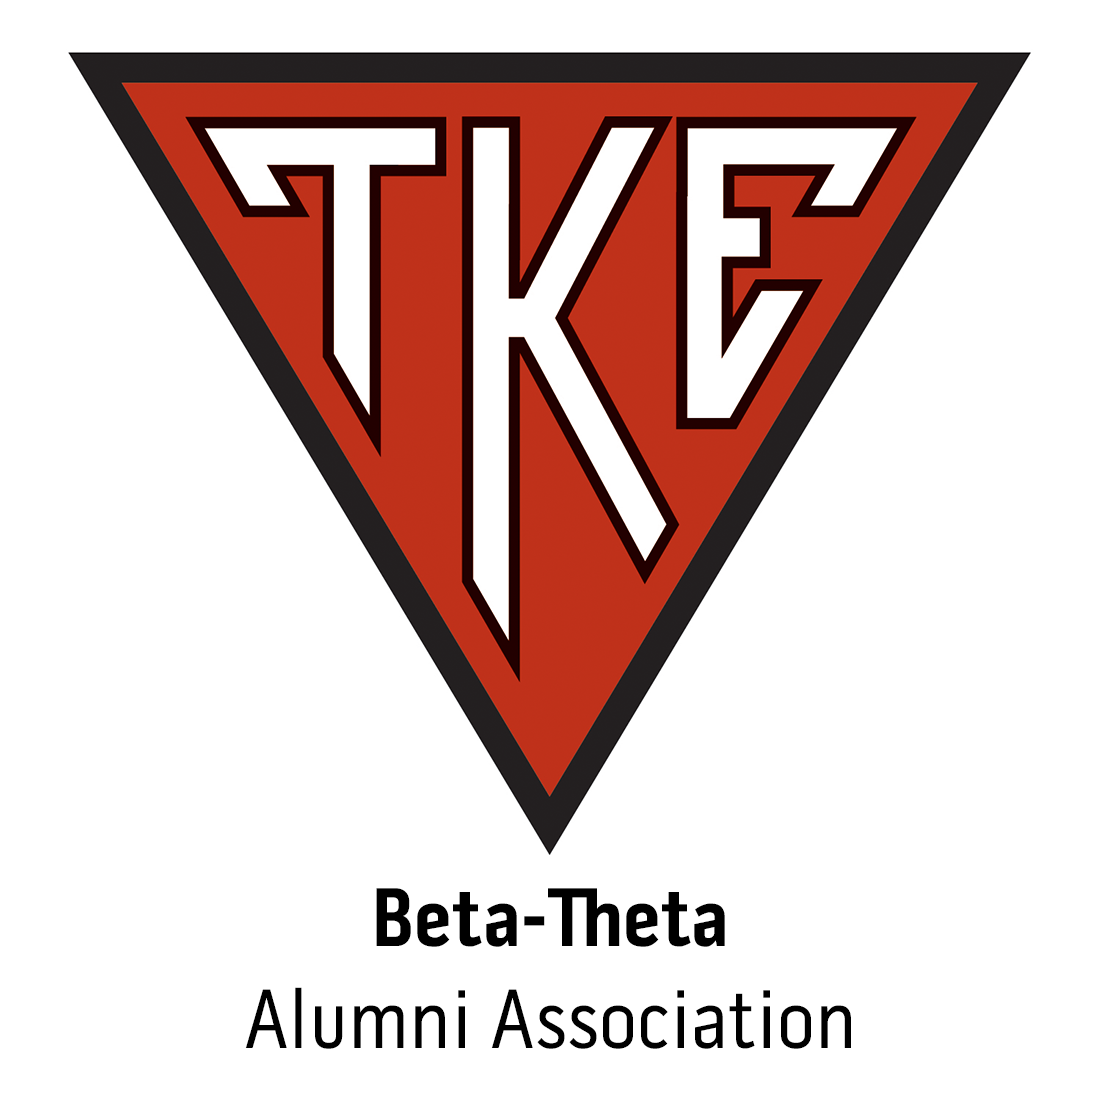 Beta-Theta Alumni Association at University of Missouri-Columbia